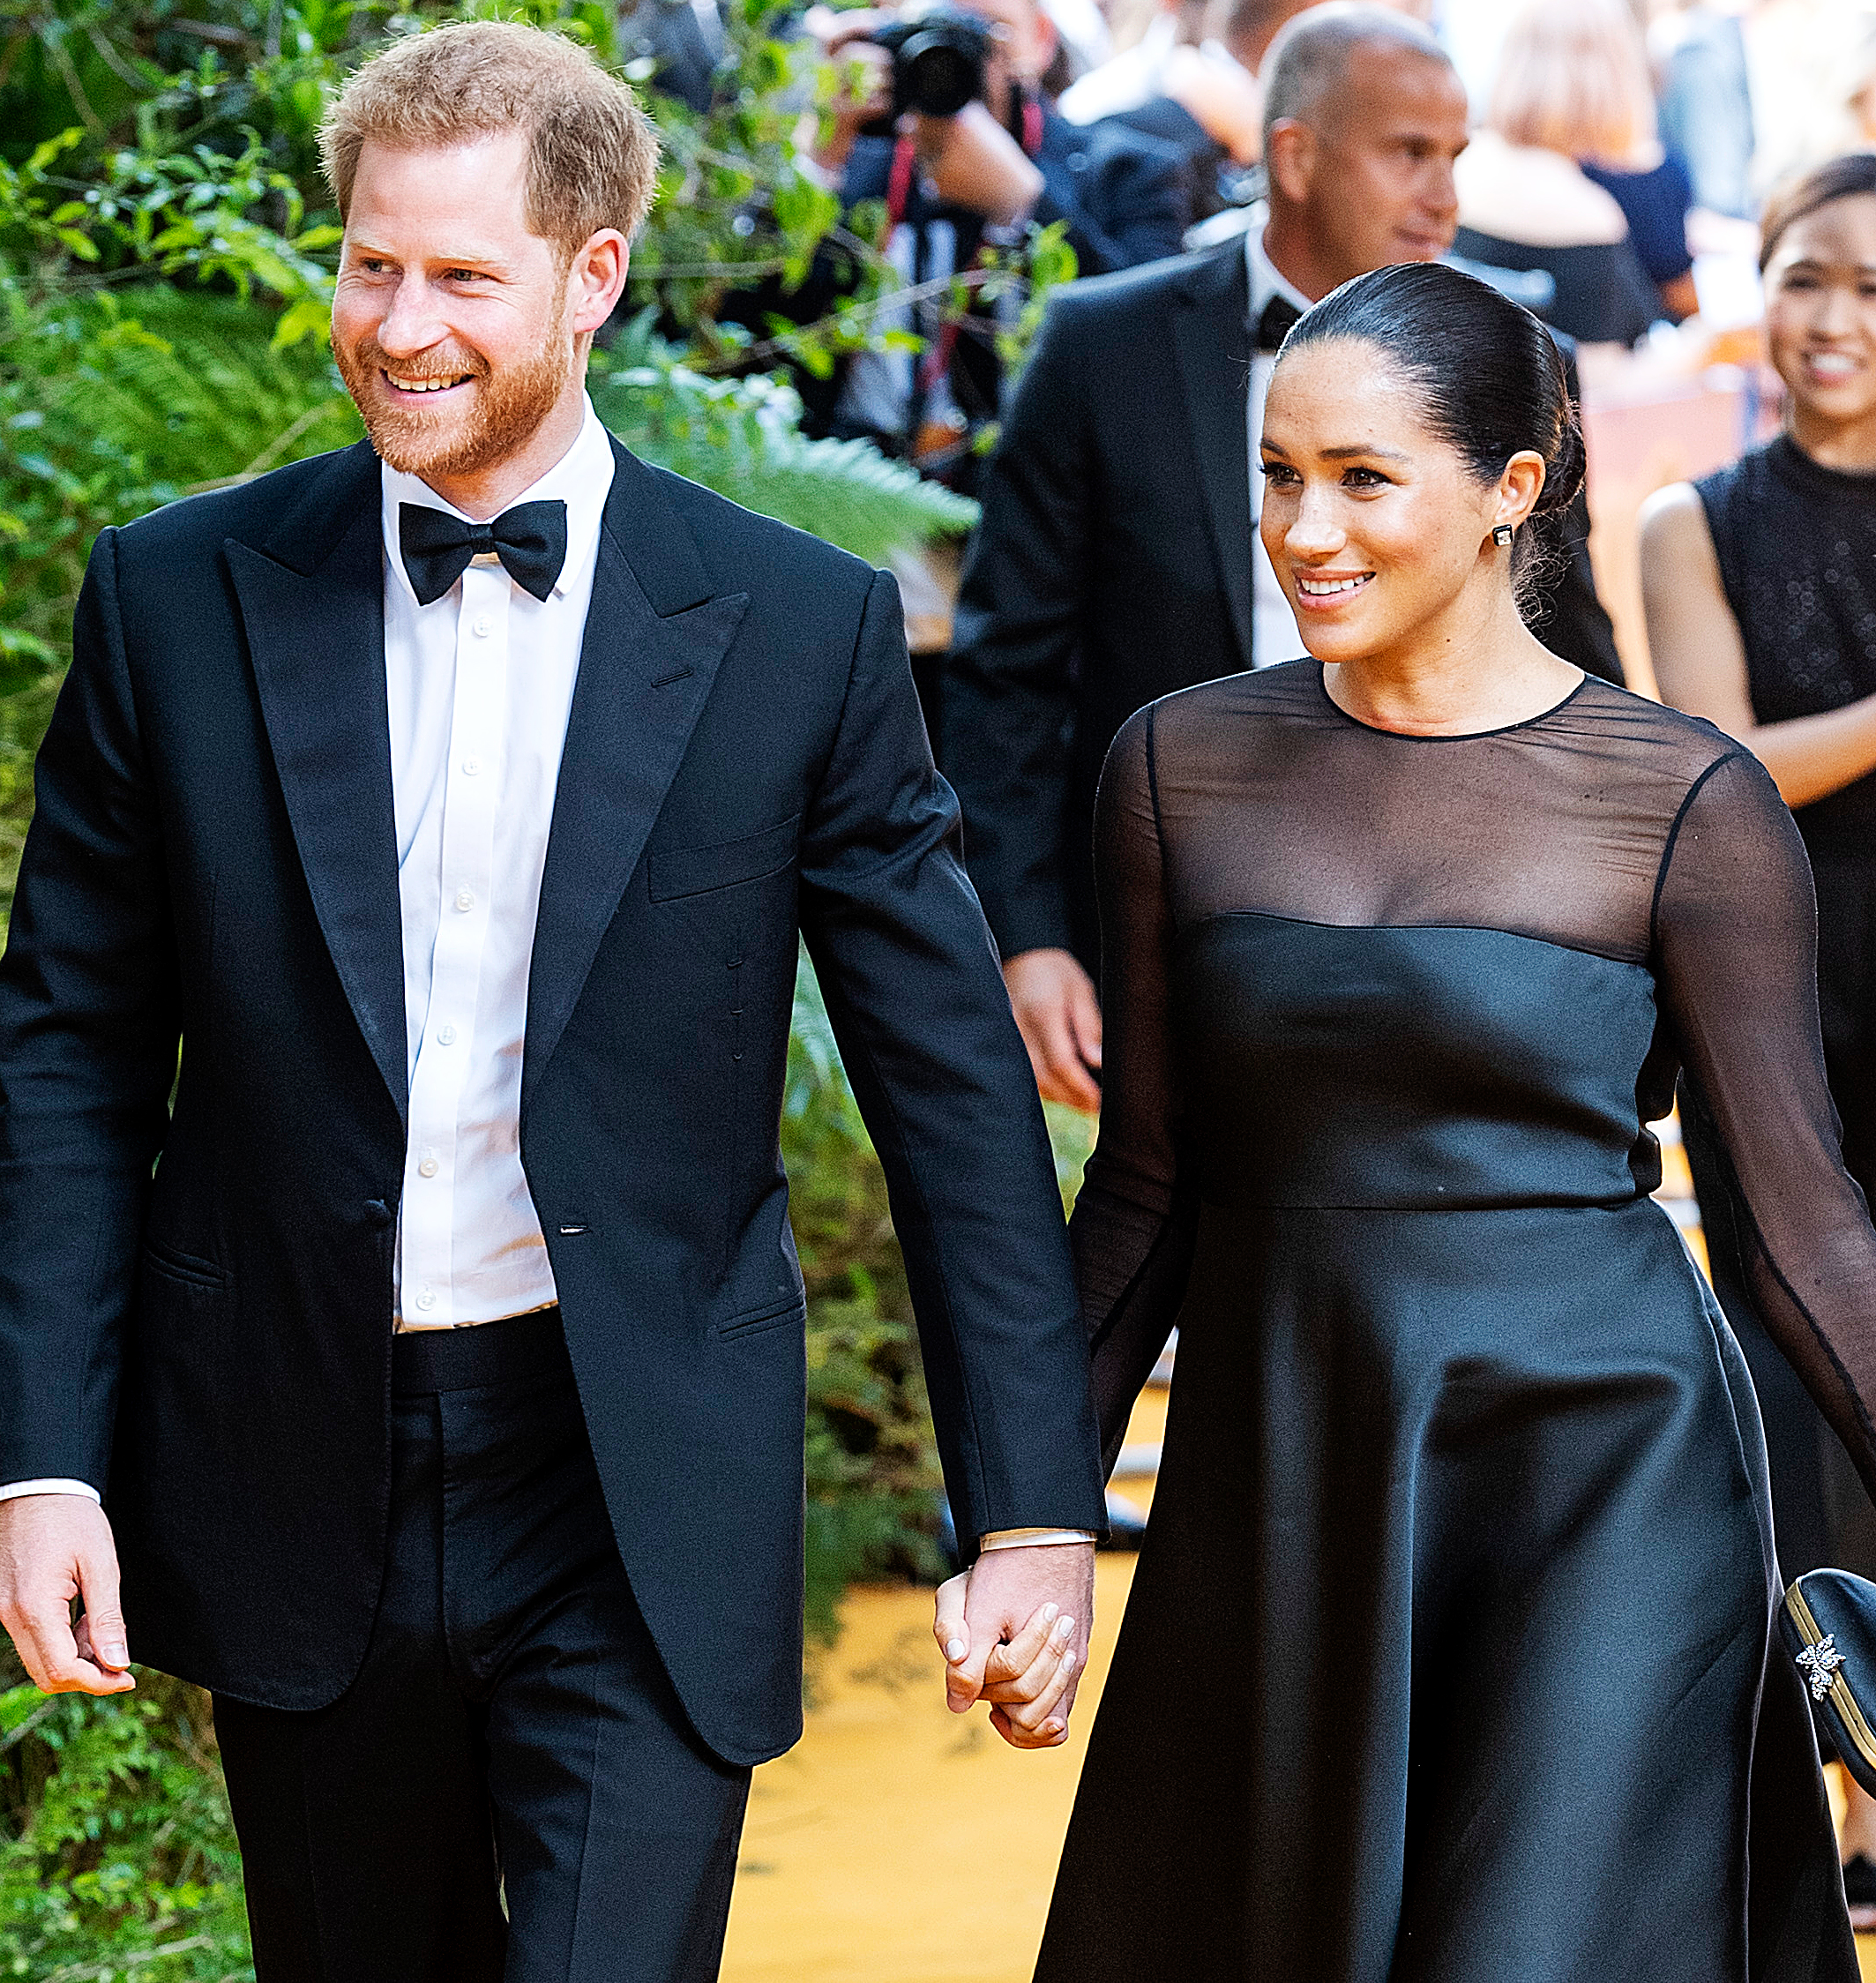 """Prince Harry Duchess Meghan New Foundation Details Revealed - Prince Harry, Duke of Sussex and Duchess Meghan attend """"The Lion King"""" European Premiere at Leicester Square on July 14, 2019 in London, England."""